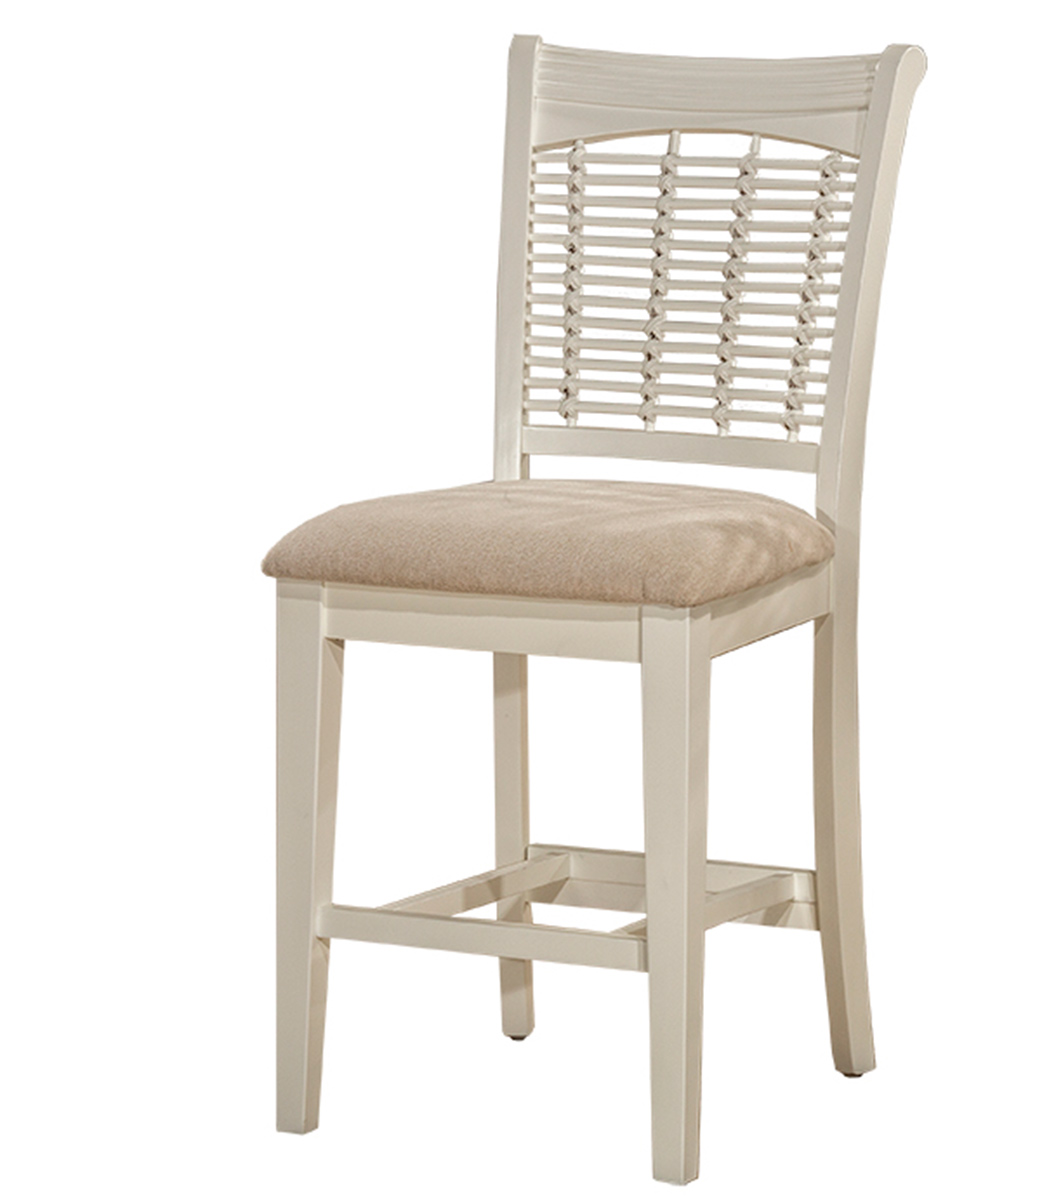 Hillsdale Bayberry Non-Swivel Counter Stool - White